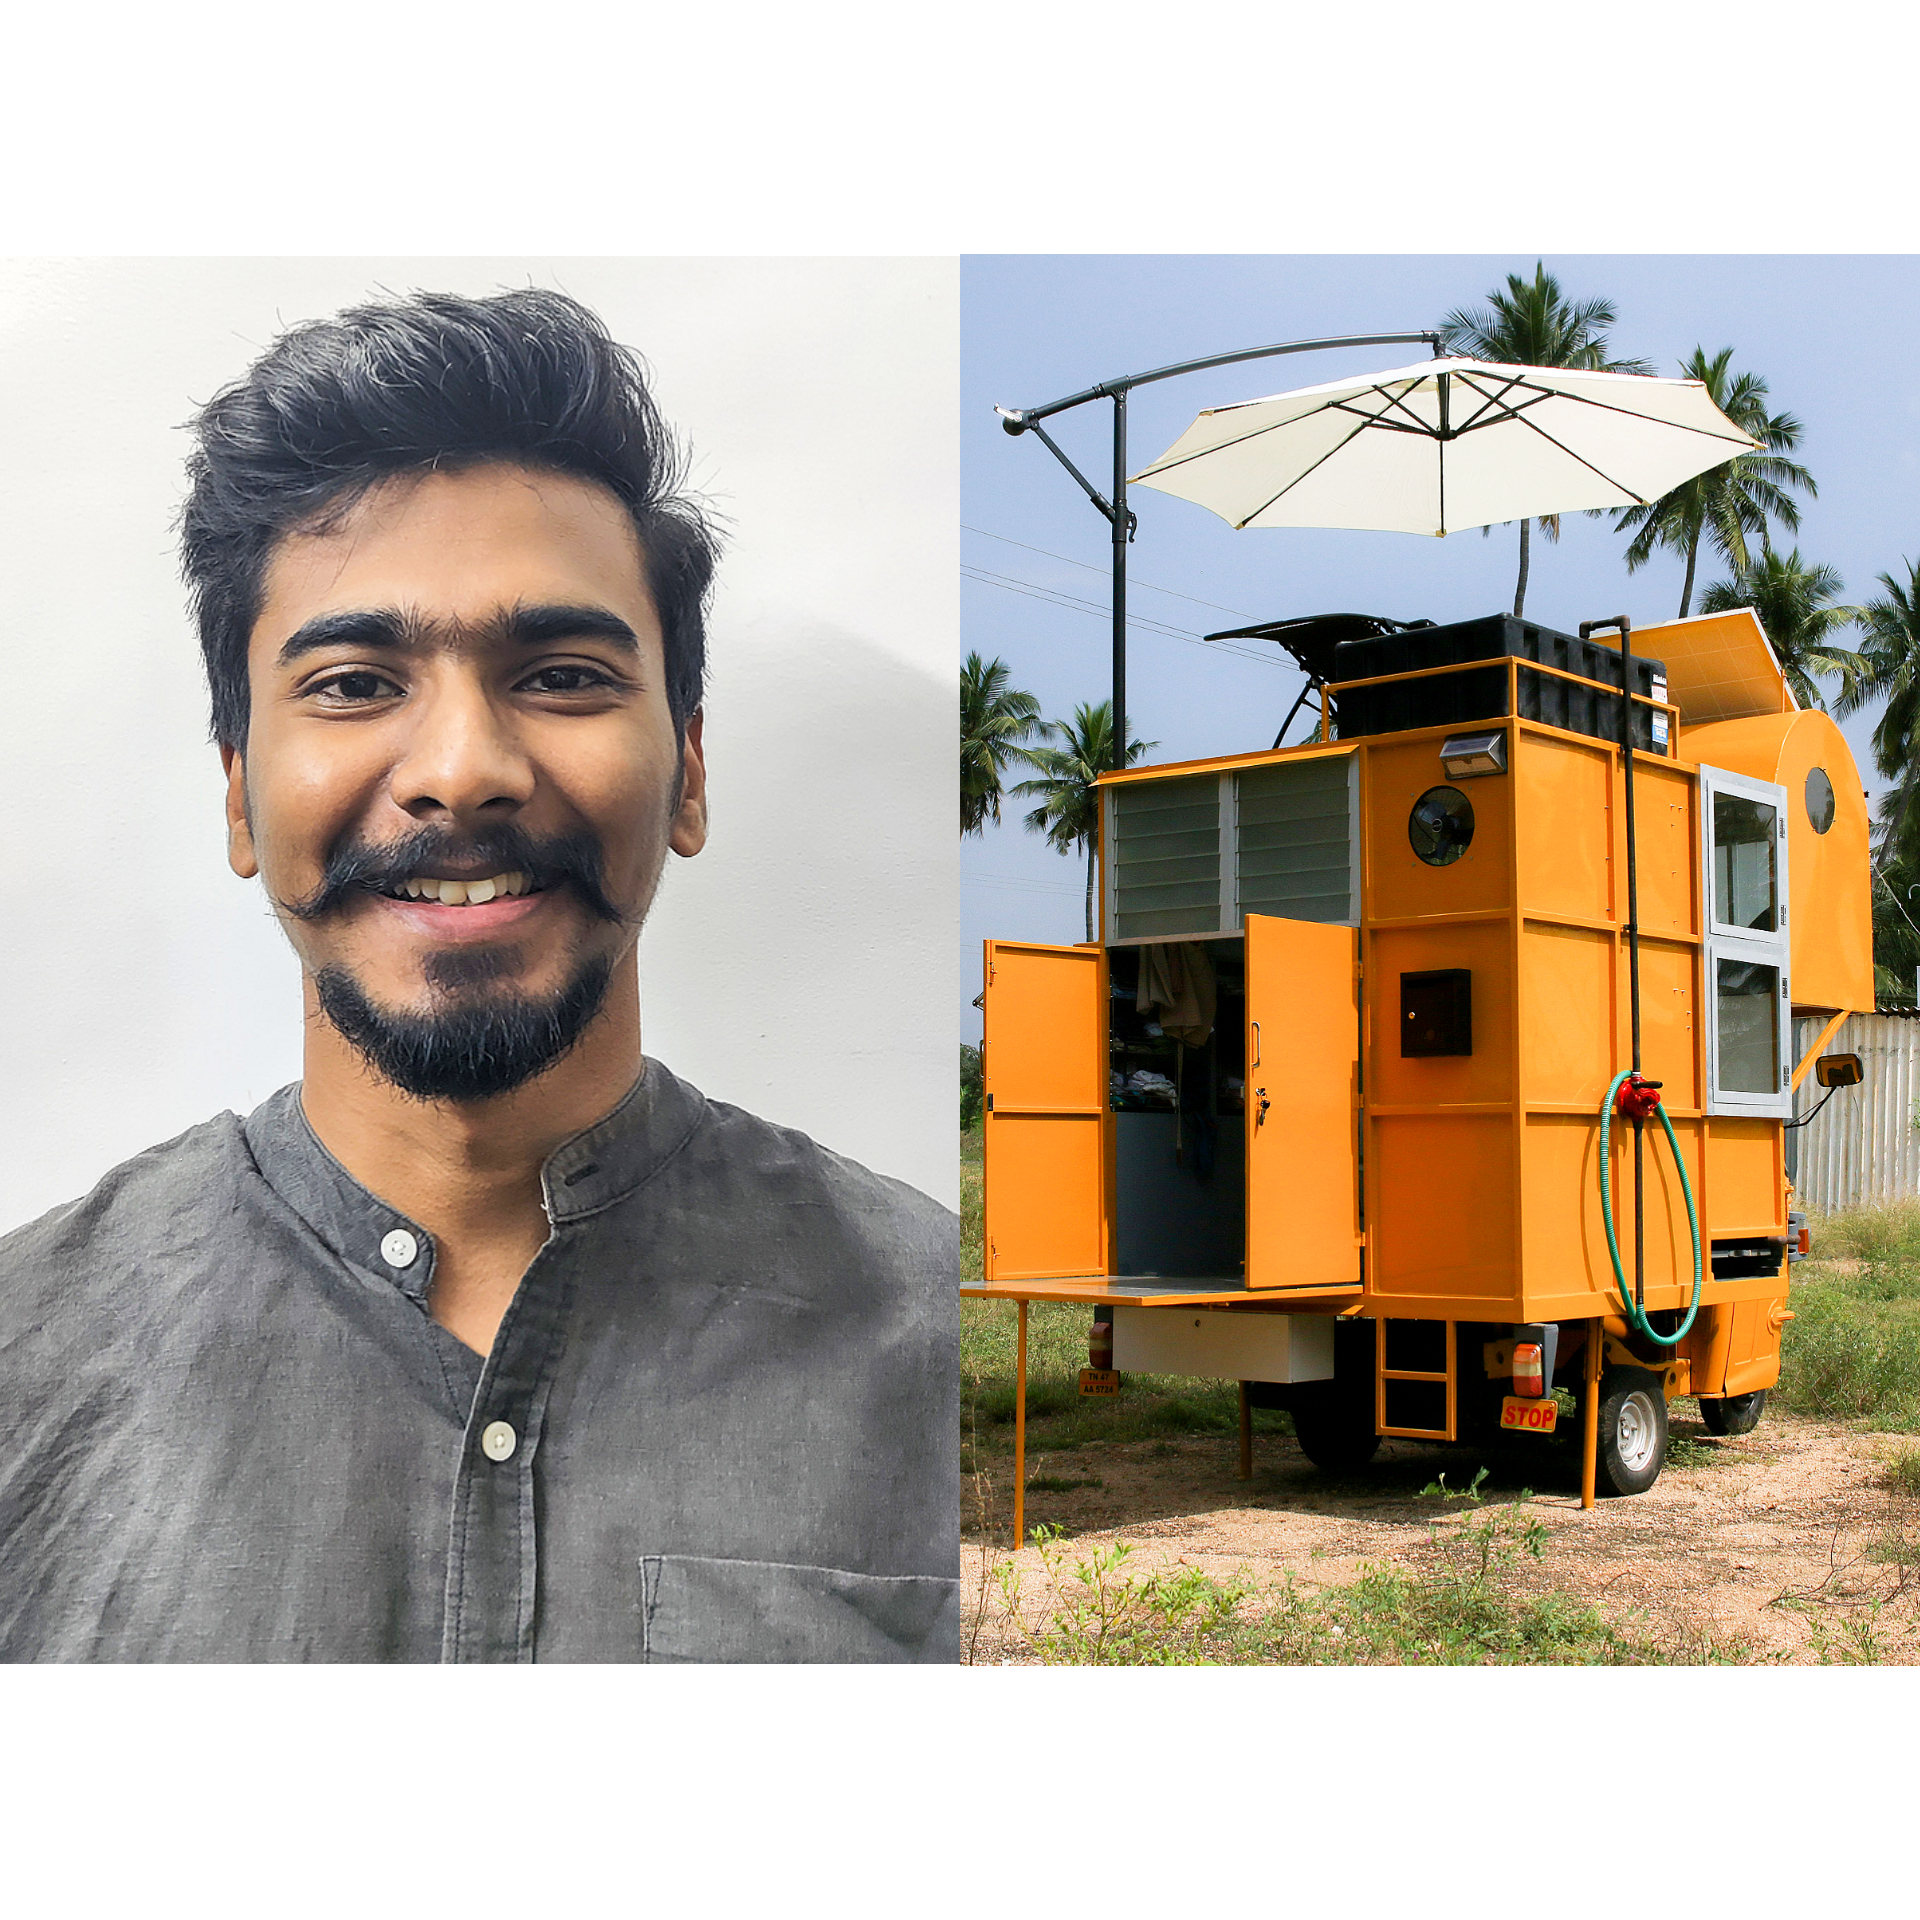 'Power of small spaces': Architect designs a 1 BHK home in a autorickshaw